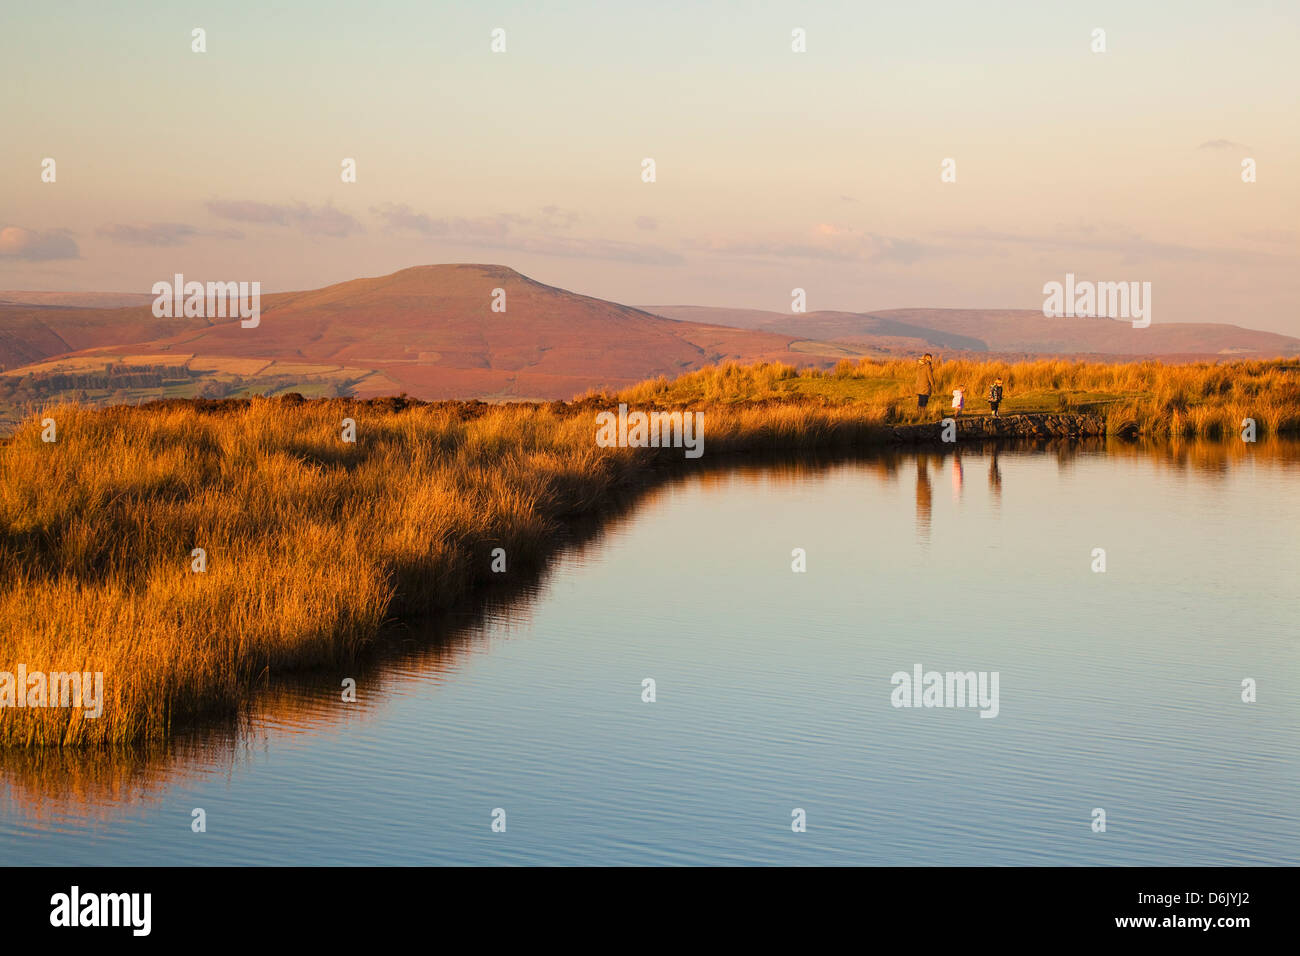 Keepers Pond, Blorenge, Sugar loaf Mountain, Brecon Beacons, Wales, U.K. - Stock Image